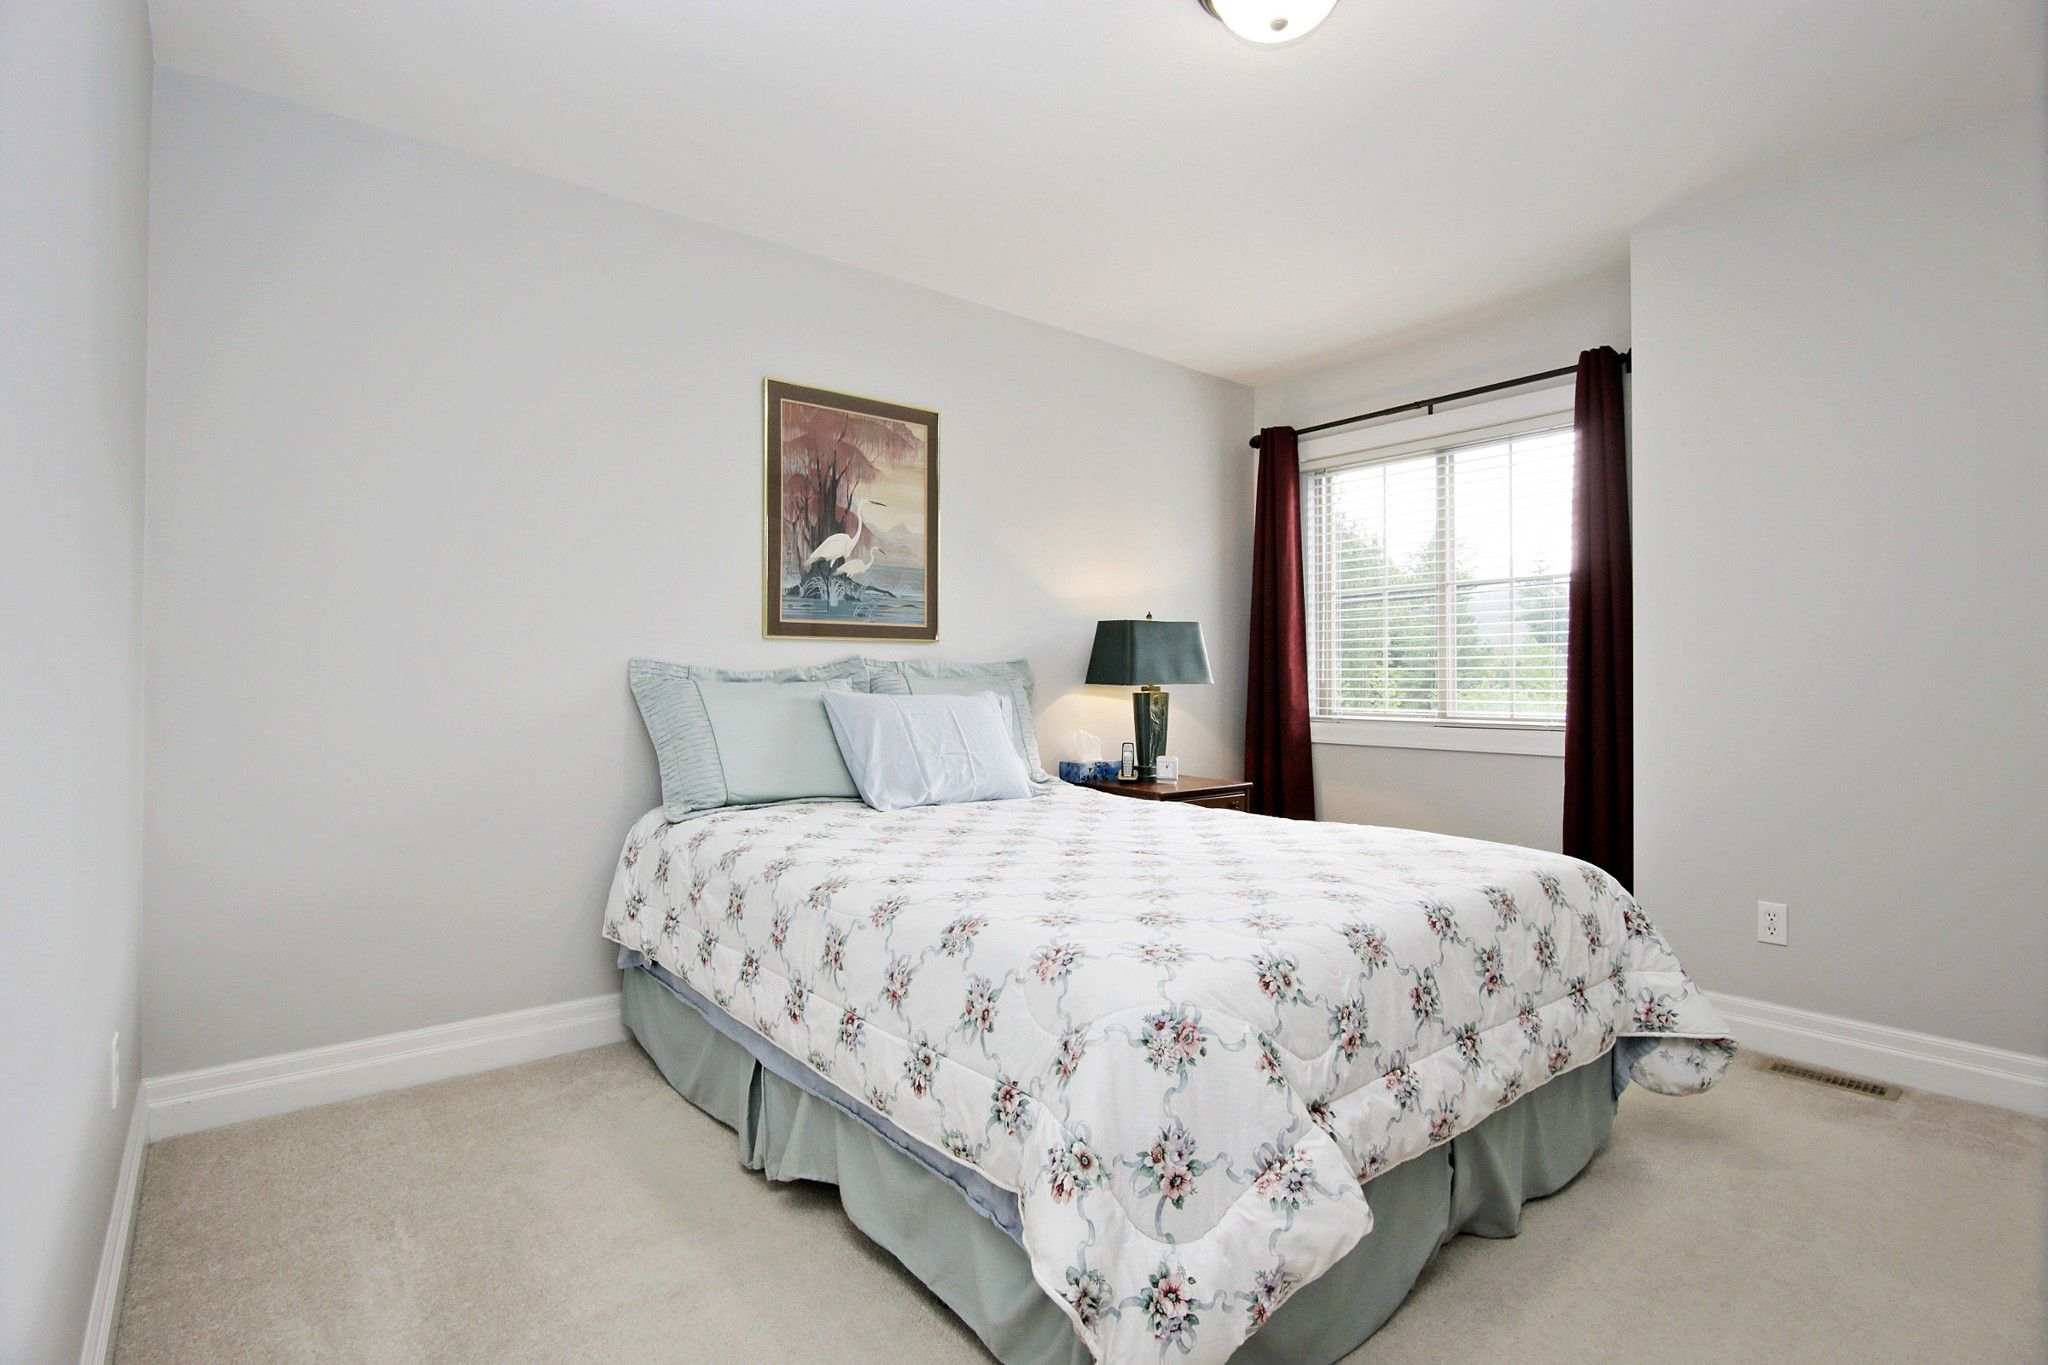 """Photo 18: Photos: 25 6450 BLACKWOOD Lane in Chilliwack: Sardis West Vedder Rd Townhouse for sale in """"THE MAPLES"""" (Sardis)  : MLS®# R2581381"""